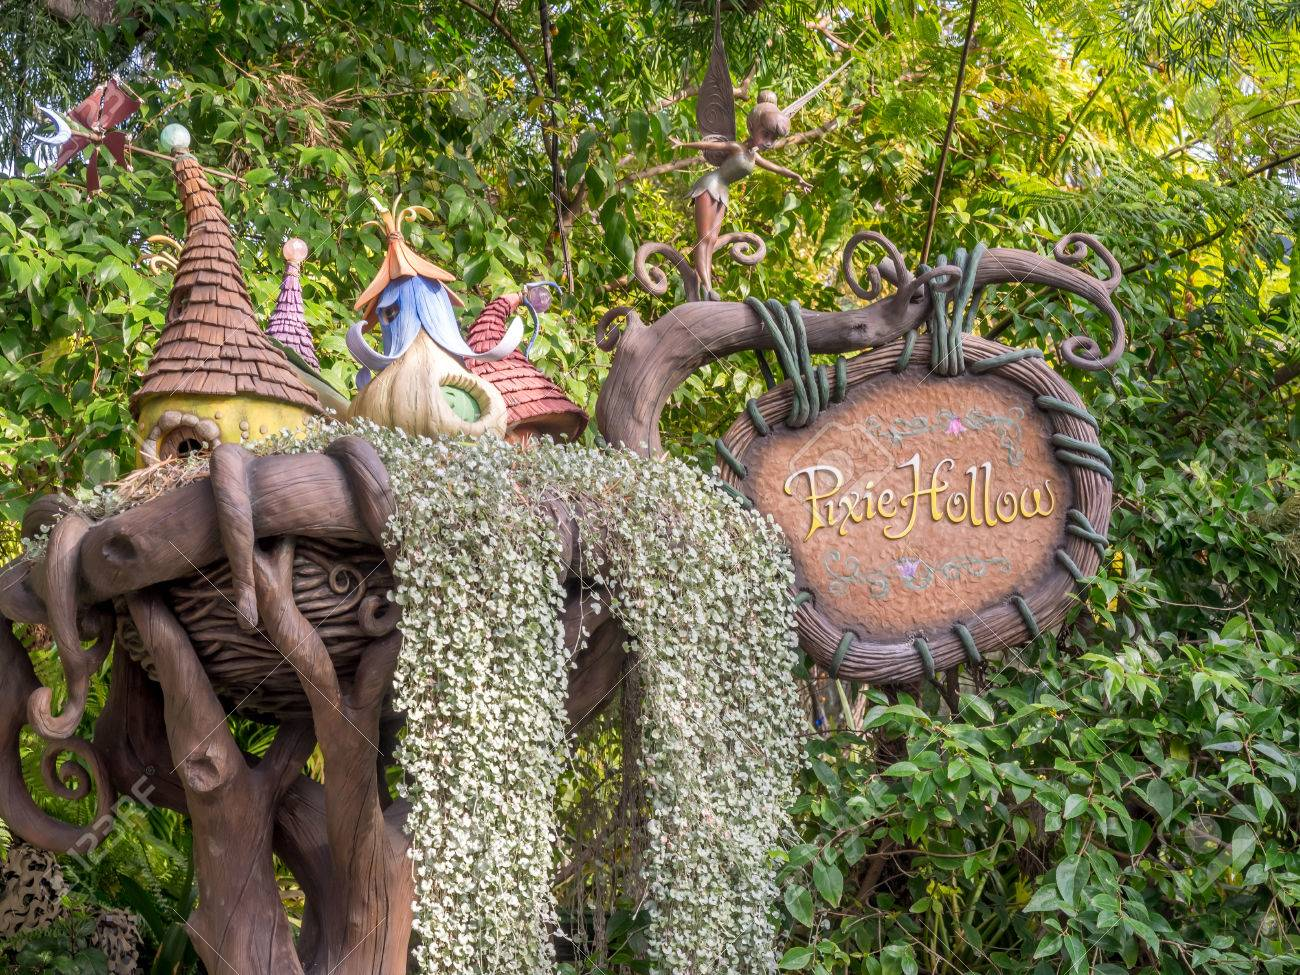 ANAHEIM, CALIFORNIA - FEBRUARY 14: Entrance sign to Pixie Hollow